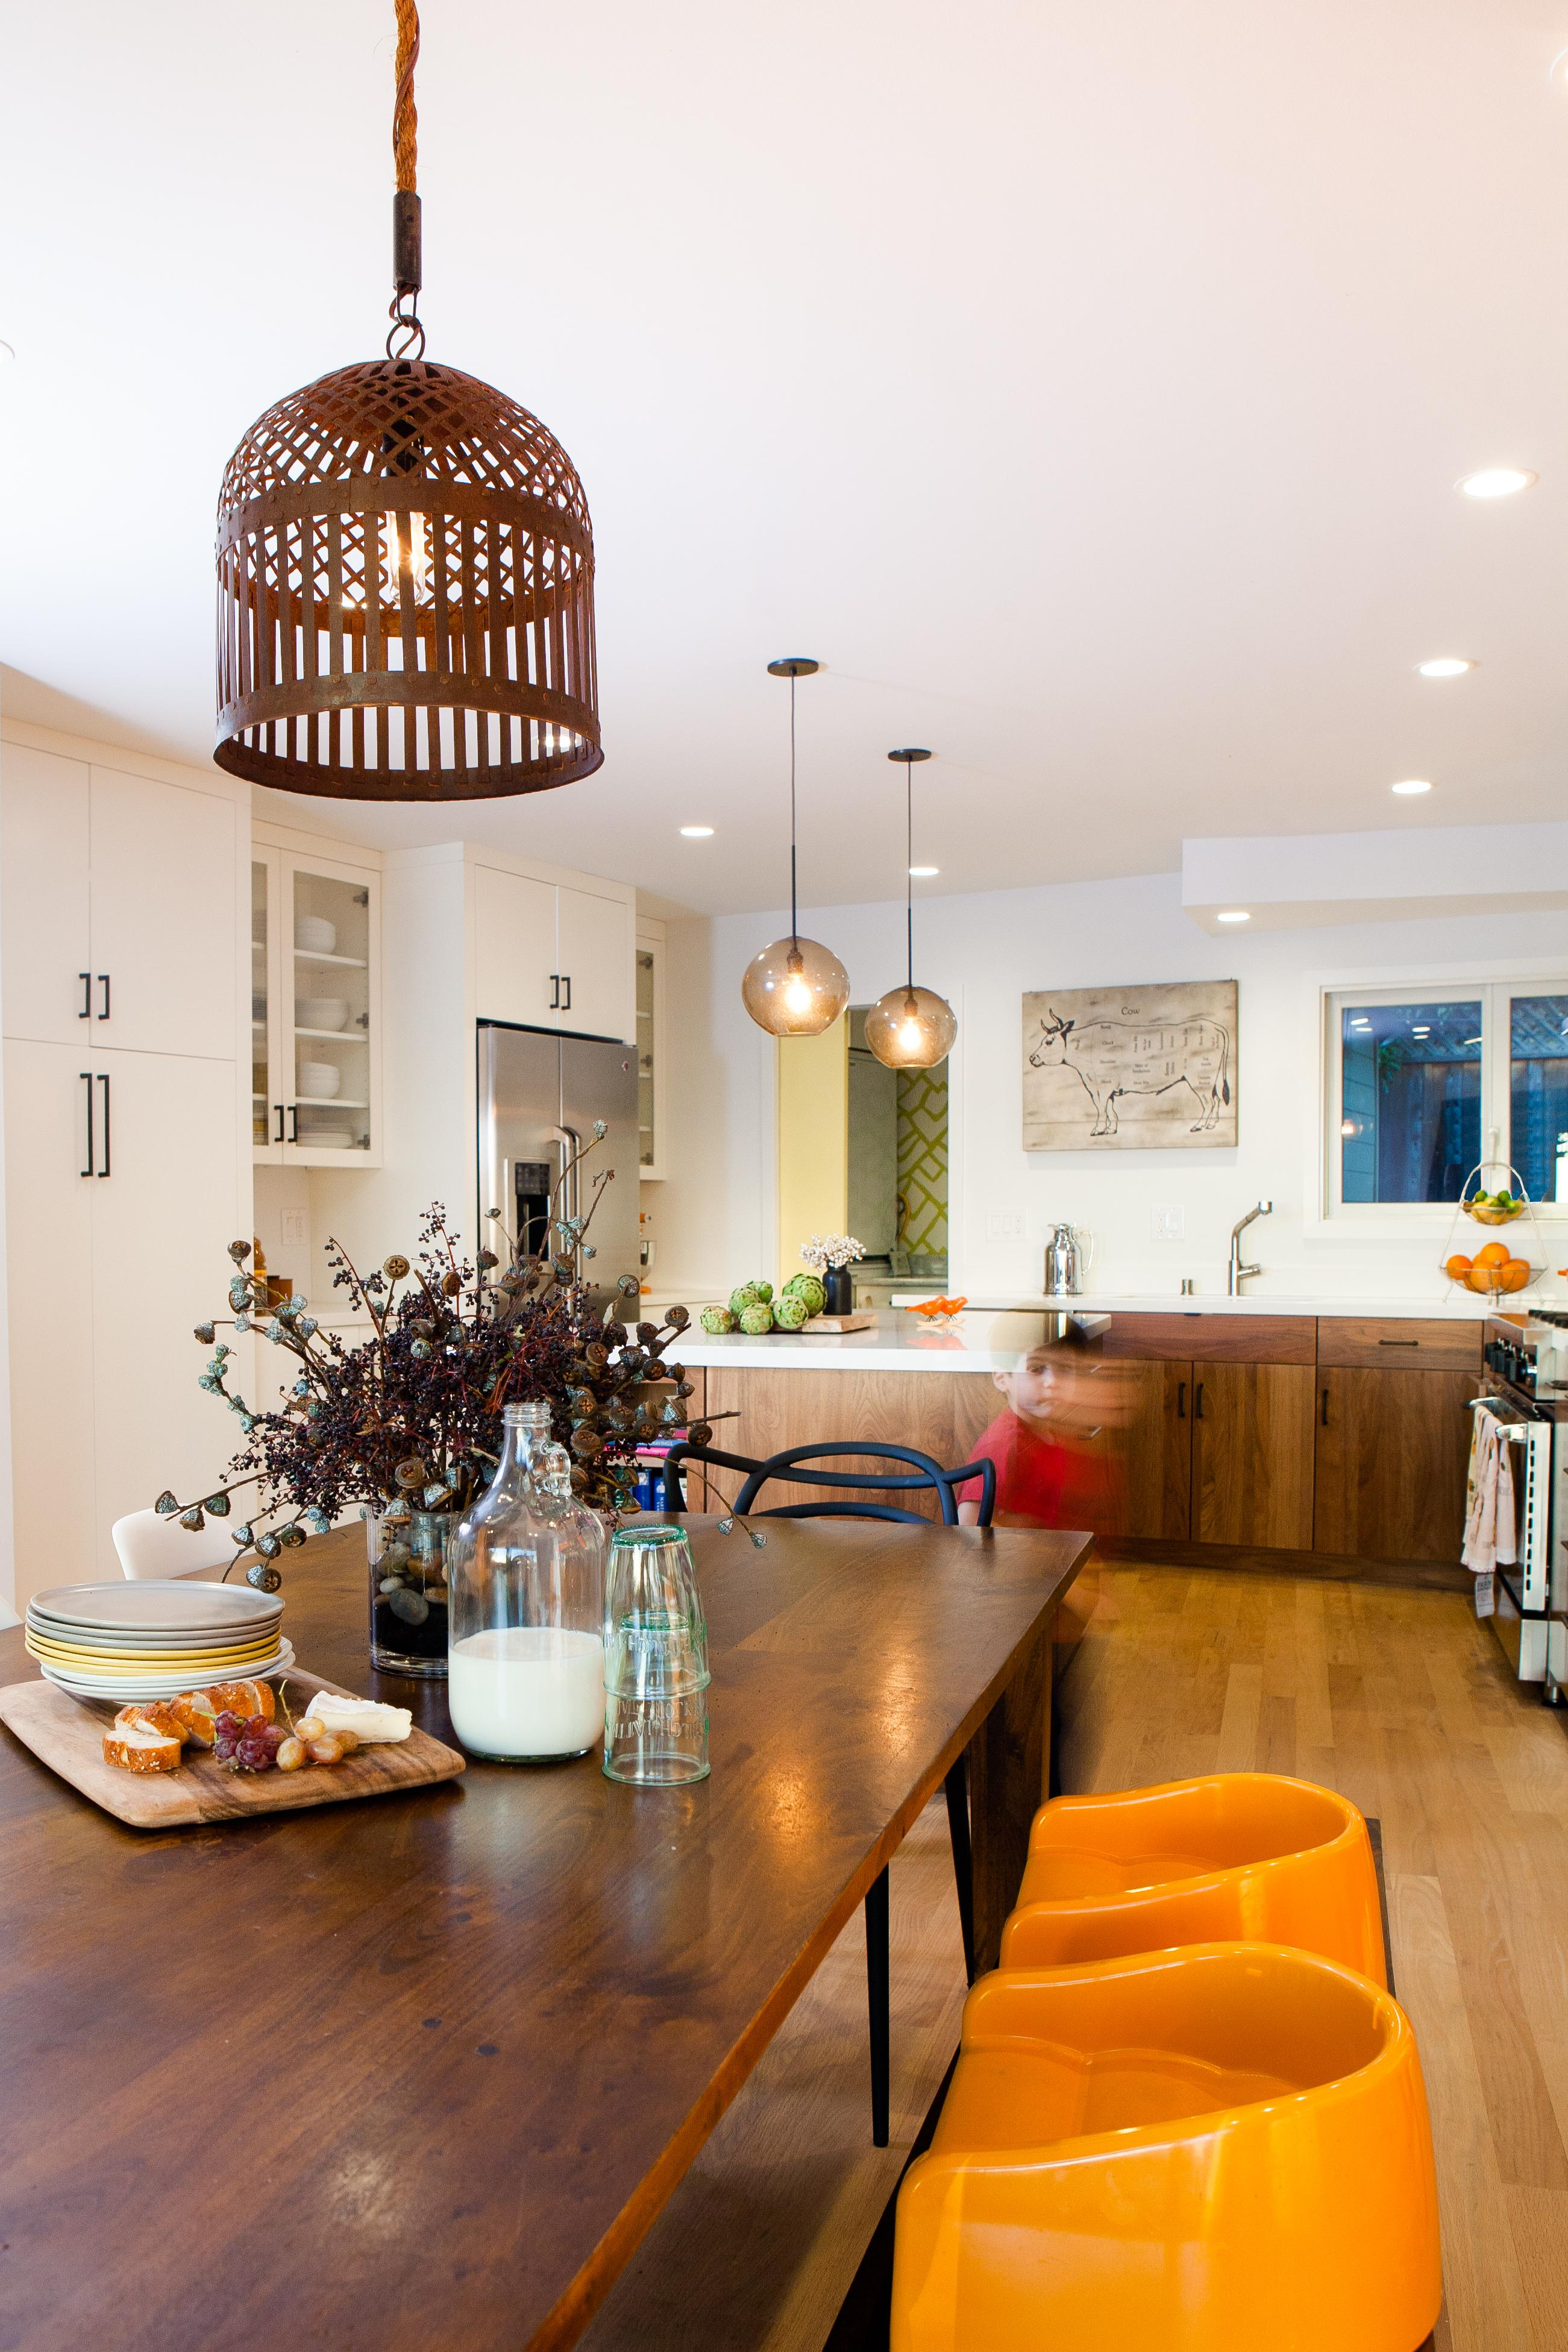 Berkeley Hills MidCentury Rancher Kitchen Family Room Dining Contemporary  Rustic Eclectic Transitional By Regan Baker Design